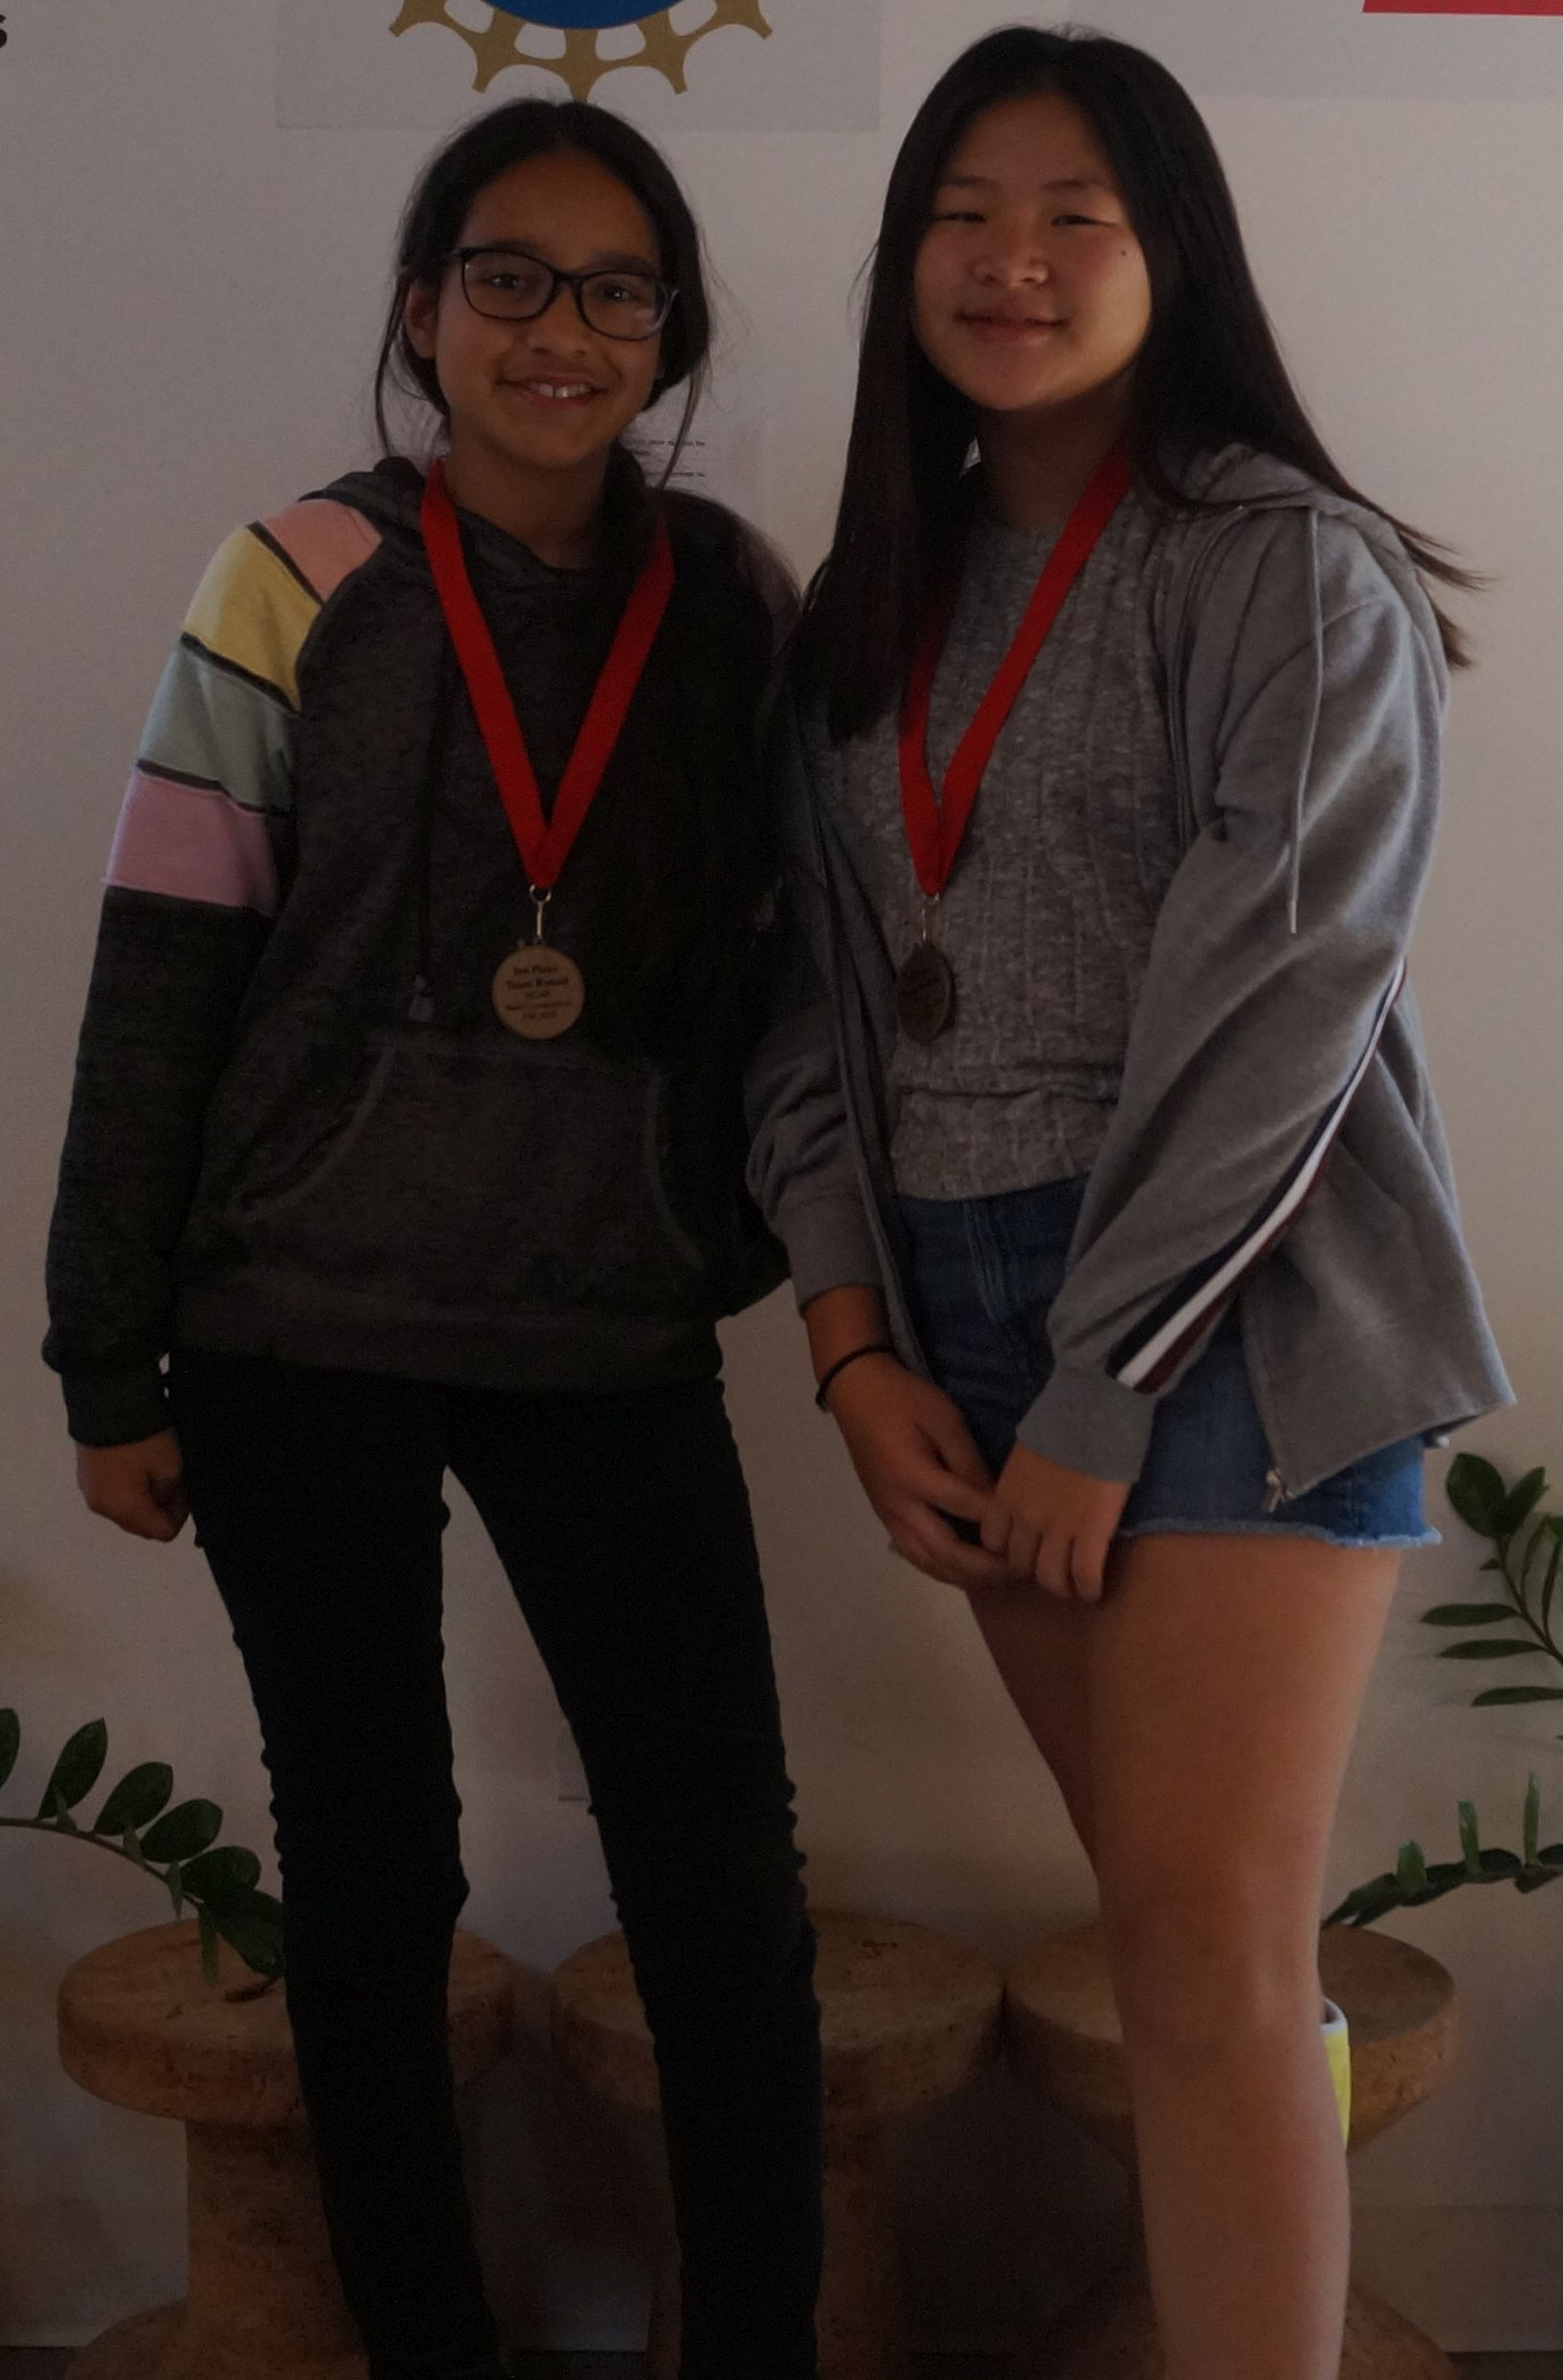 Kaylee and Sharon, BEAM 6 alum, won 3rd place in the team round representing Rise Kohyang Middle School.